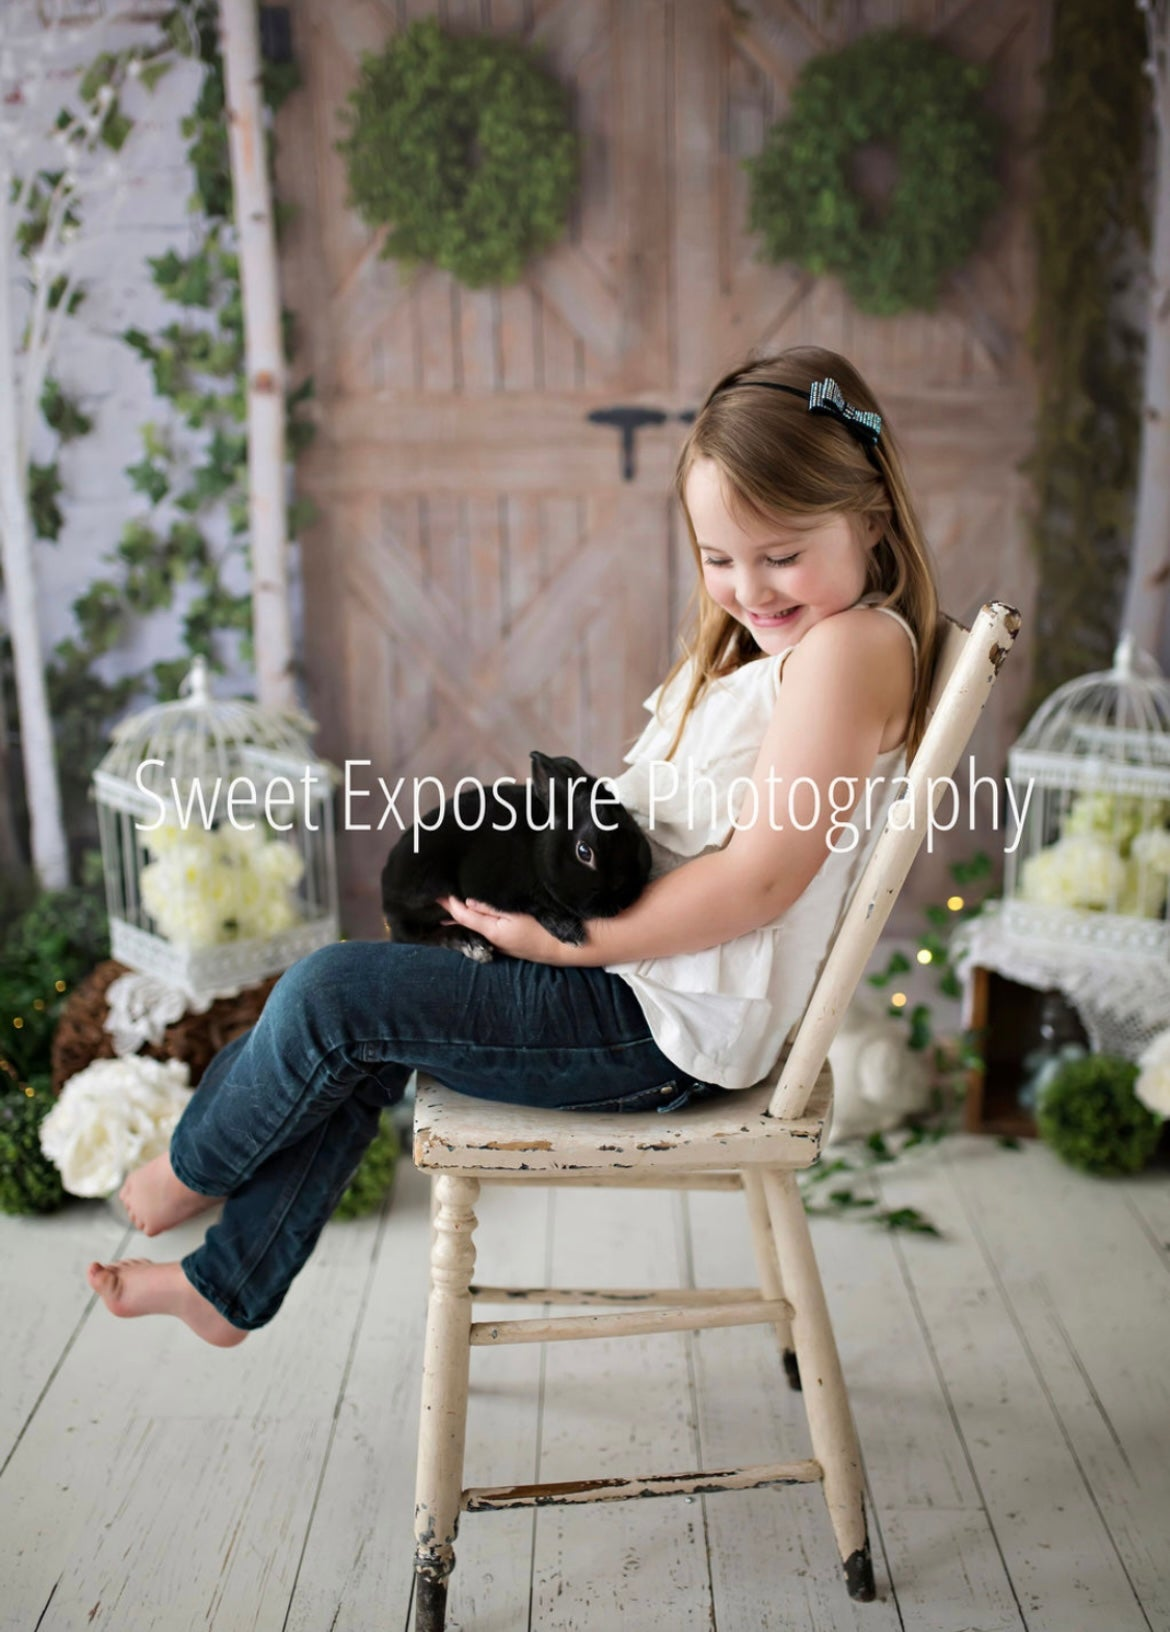 Image of 2022 Limited Spring Studio Sessions - retainer only